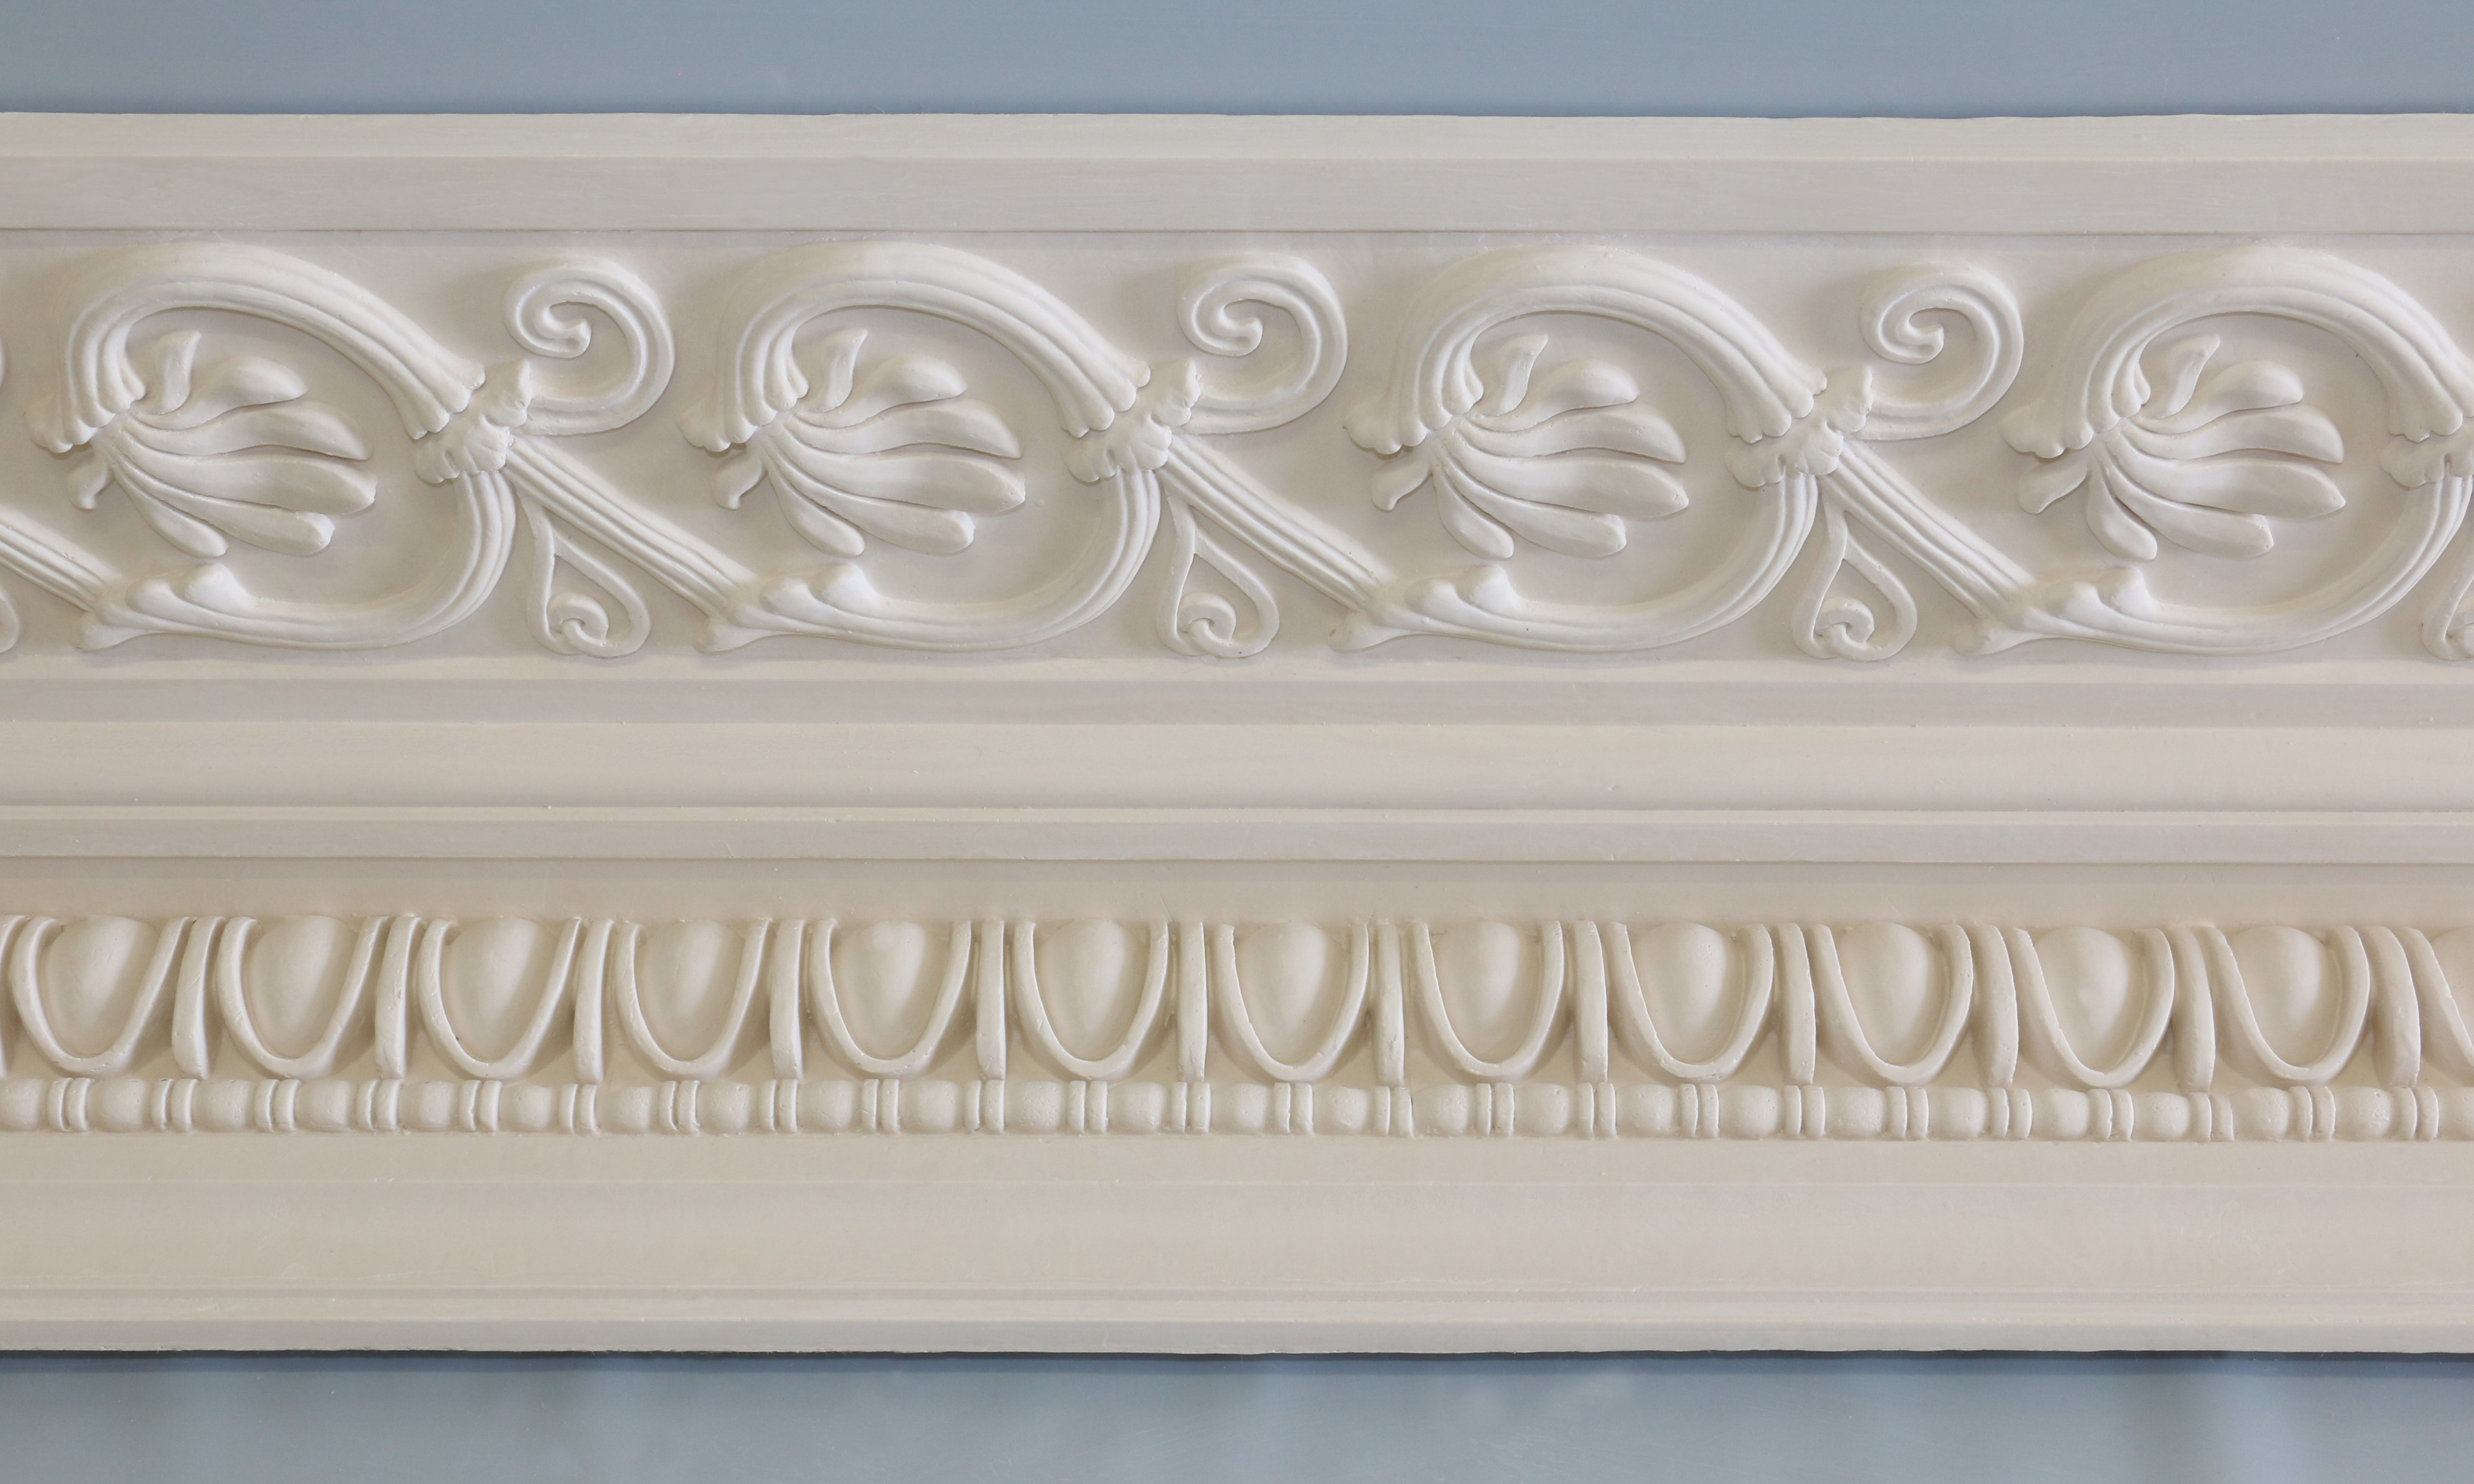 Georgian Coving Designs Coving For Every Room